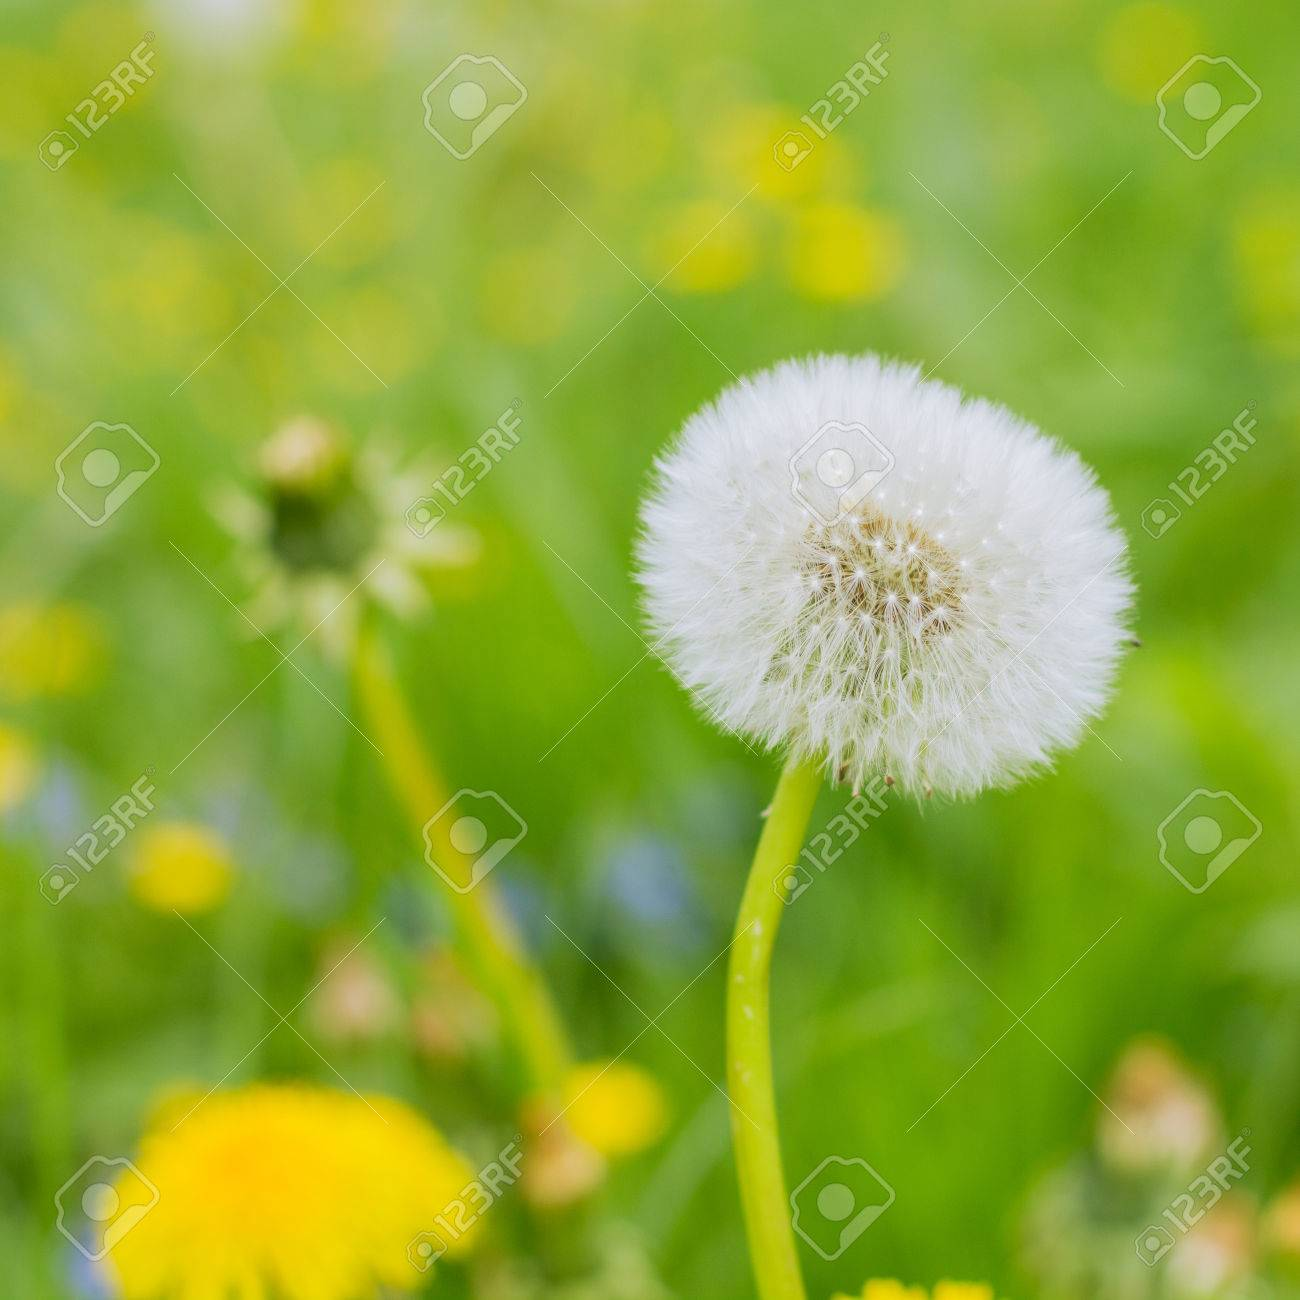 Spring Flowers Dandelions at beautiful sunny day. - 46976714